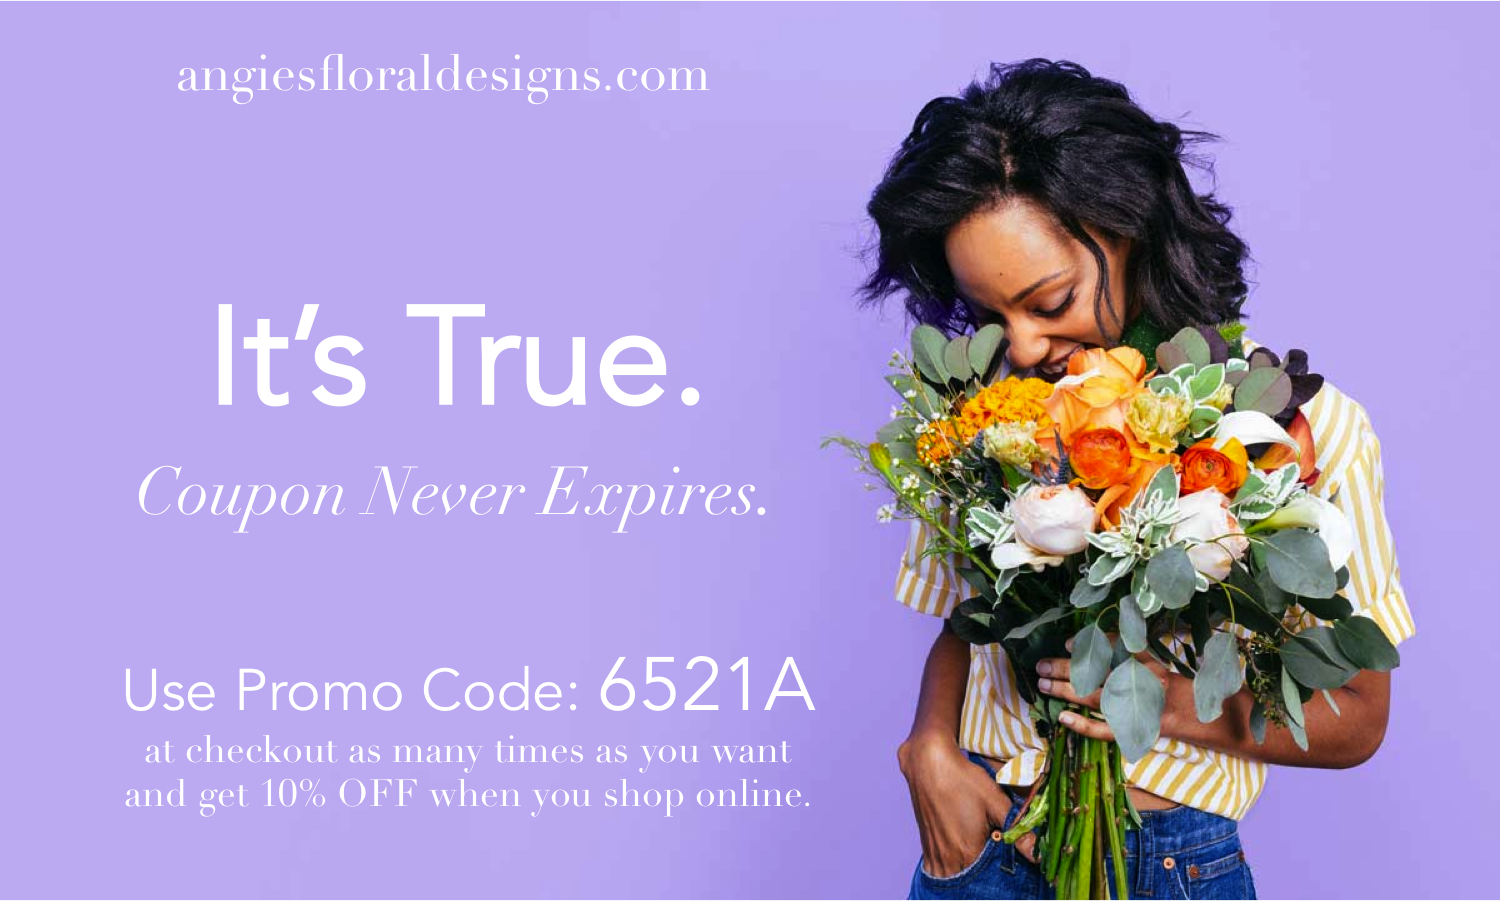 -.-a-ngies-coupon-flower-delivery-angie-s-floral-designs-el-paso-business-accounts-floral-designs-plants-gifts-shopflores-online-el-paso-texas-florist-flower-delivery-weddings-events-79912.png